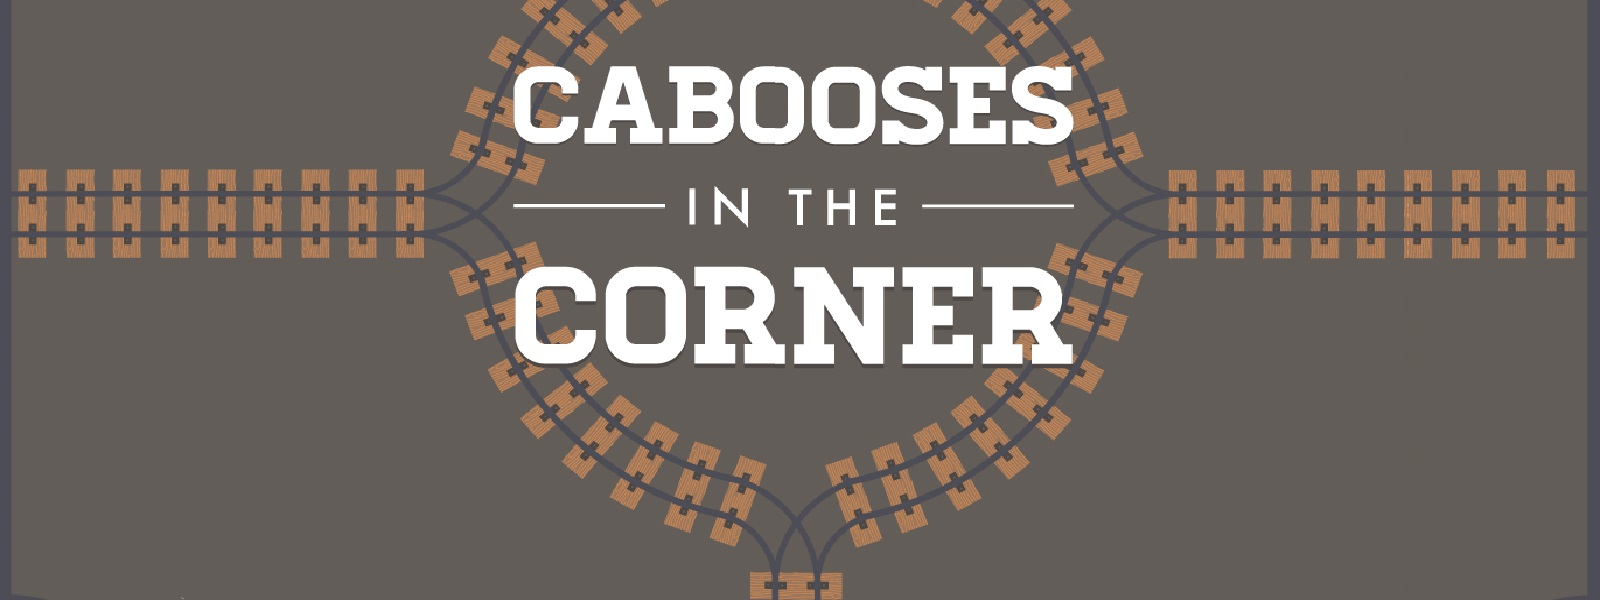 Cabooses in the Corner: Deluxe Edition